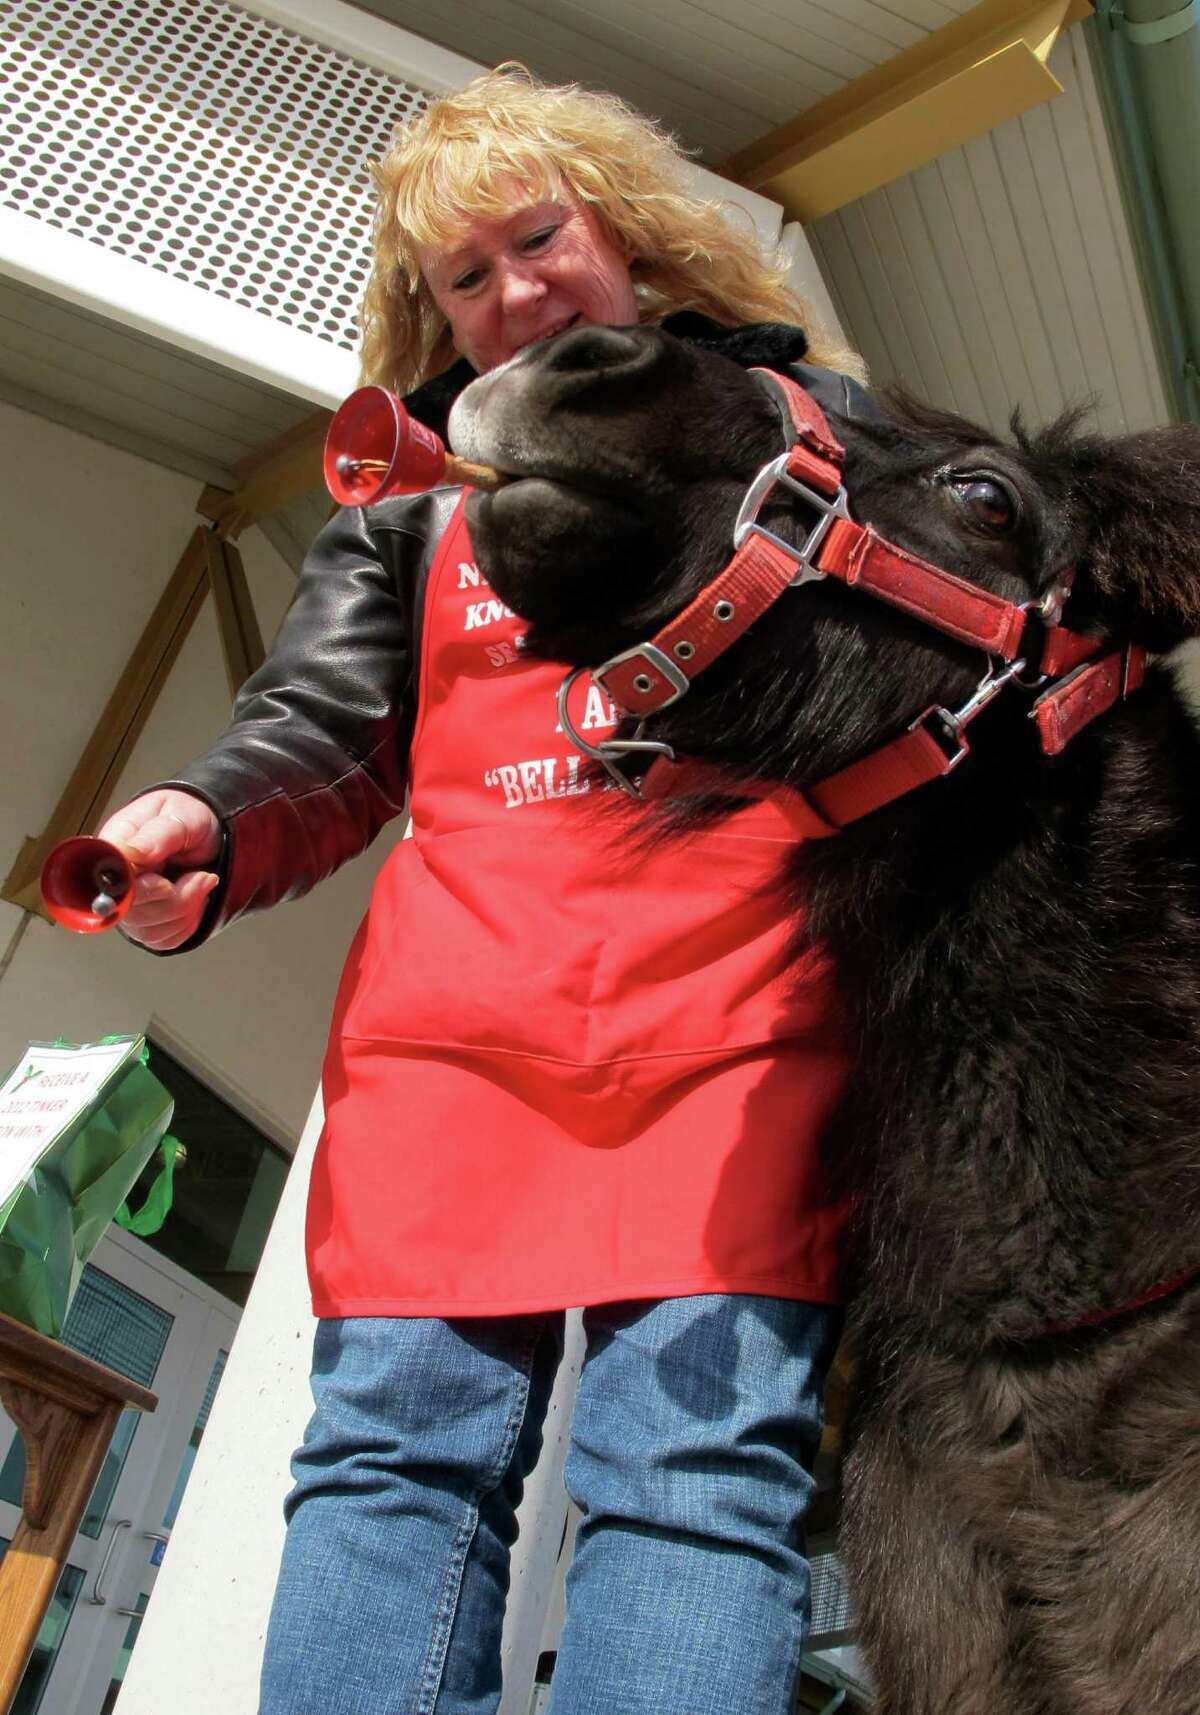 In this Nov. 17, 2012 photo Tinker, a miniature horse, rings a red bell for the Salvation Army with his owner Carol Takacs in West Bend, Wis. Takacs says his name was Tinker when she and her husband got him and they couldn't have named him better if they tried.